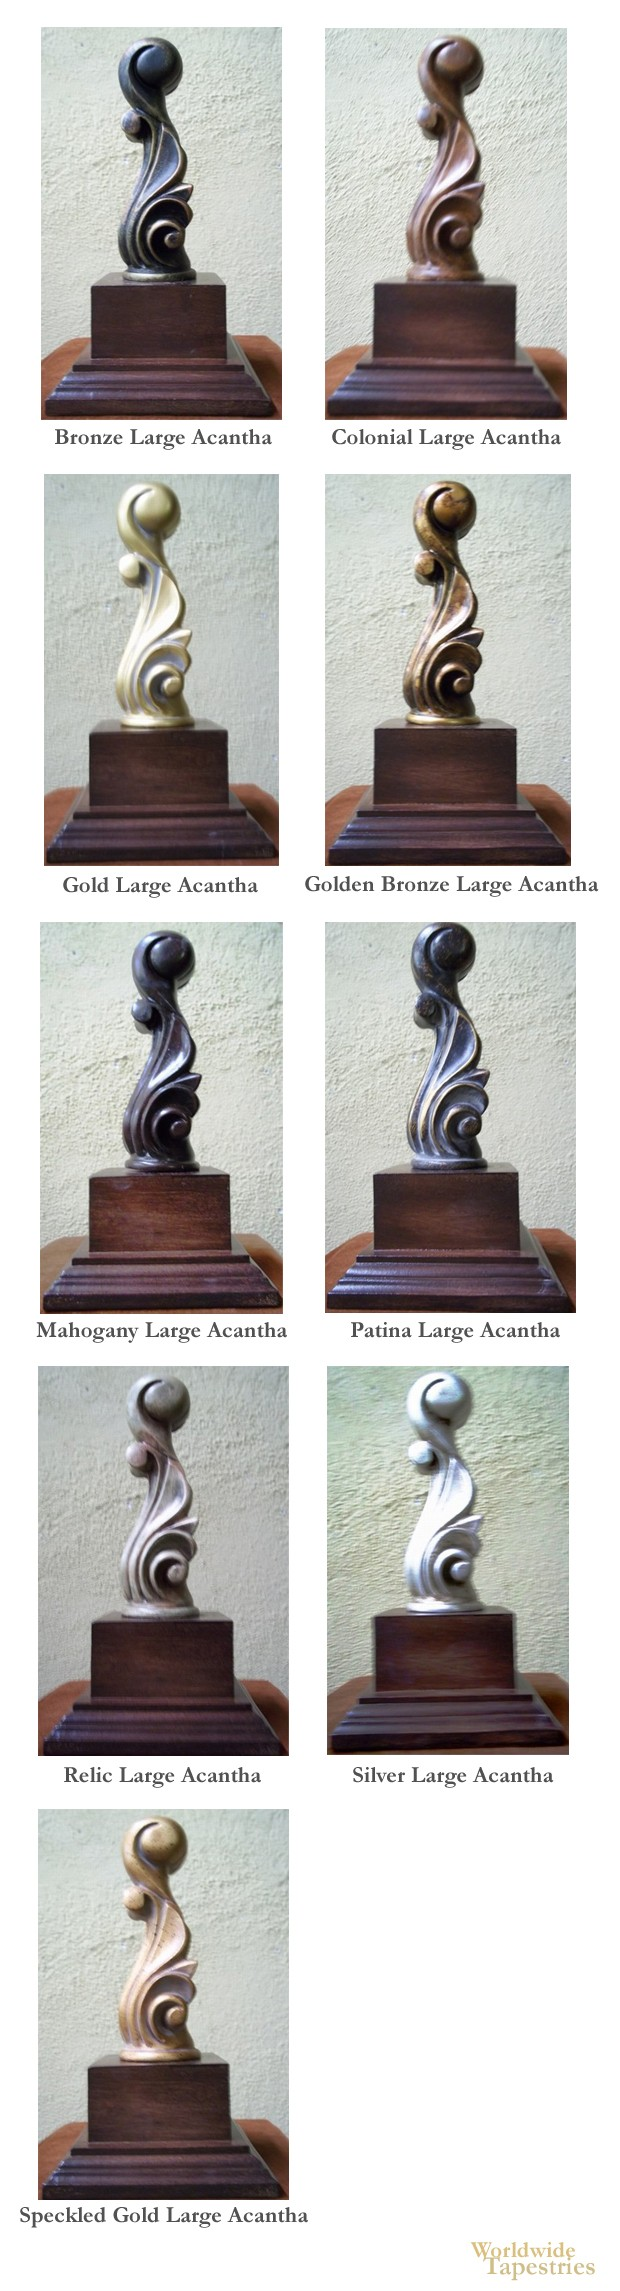 Large Acantha Finial Set